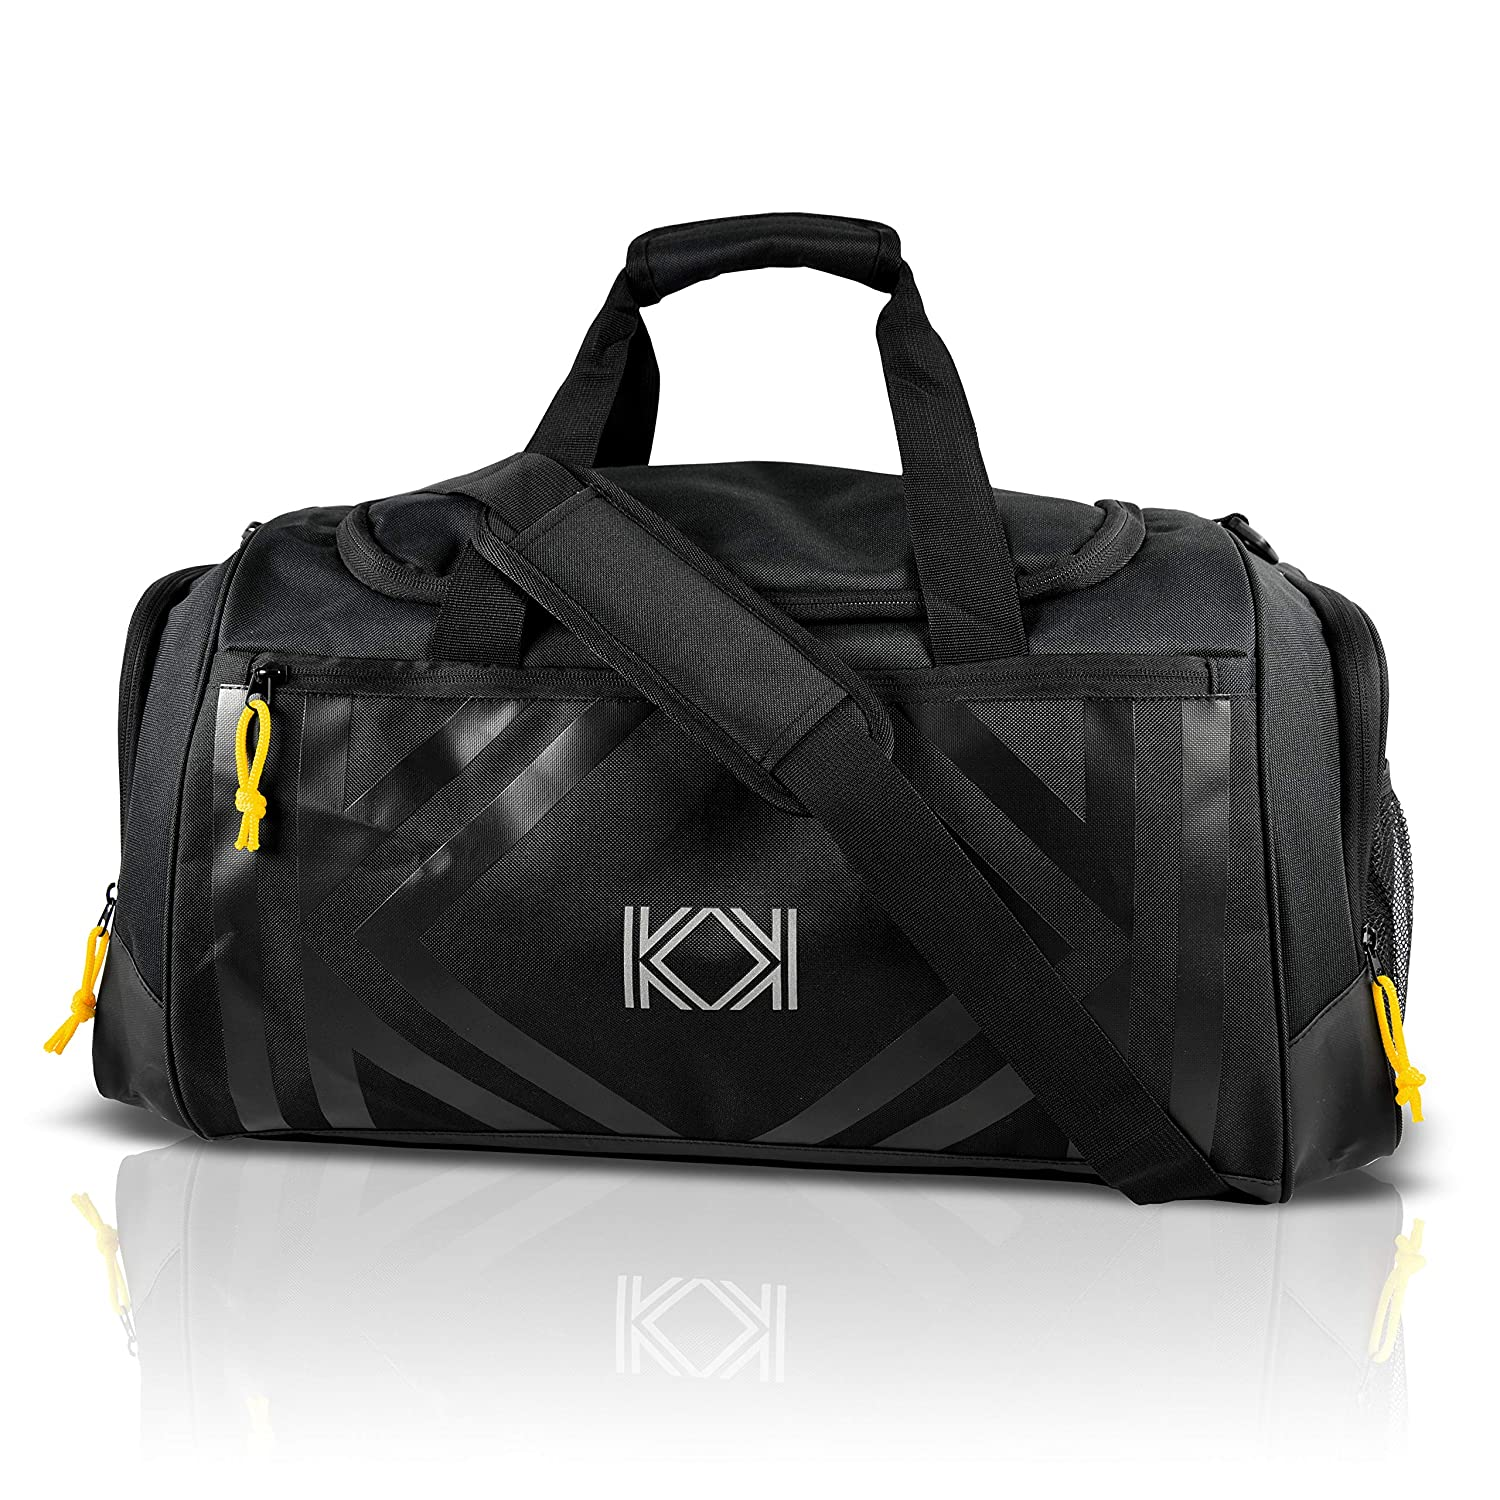 KK Gym Bag, Black Sport Duffle Bag With Yoga Mat Holder, Separate Shoes Compartment,47L Large Travel Bag, Water Resistant